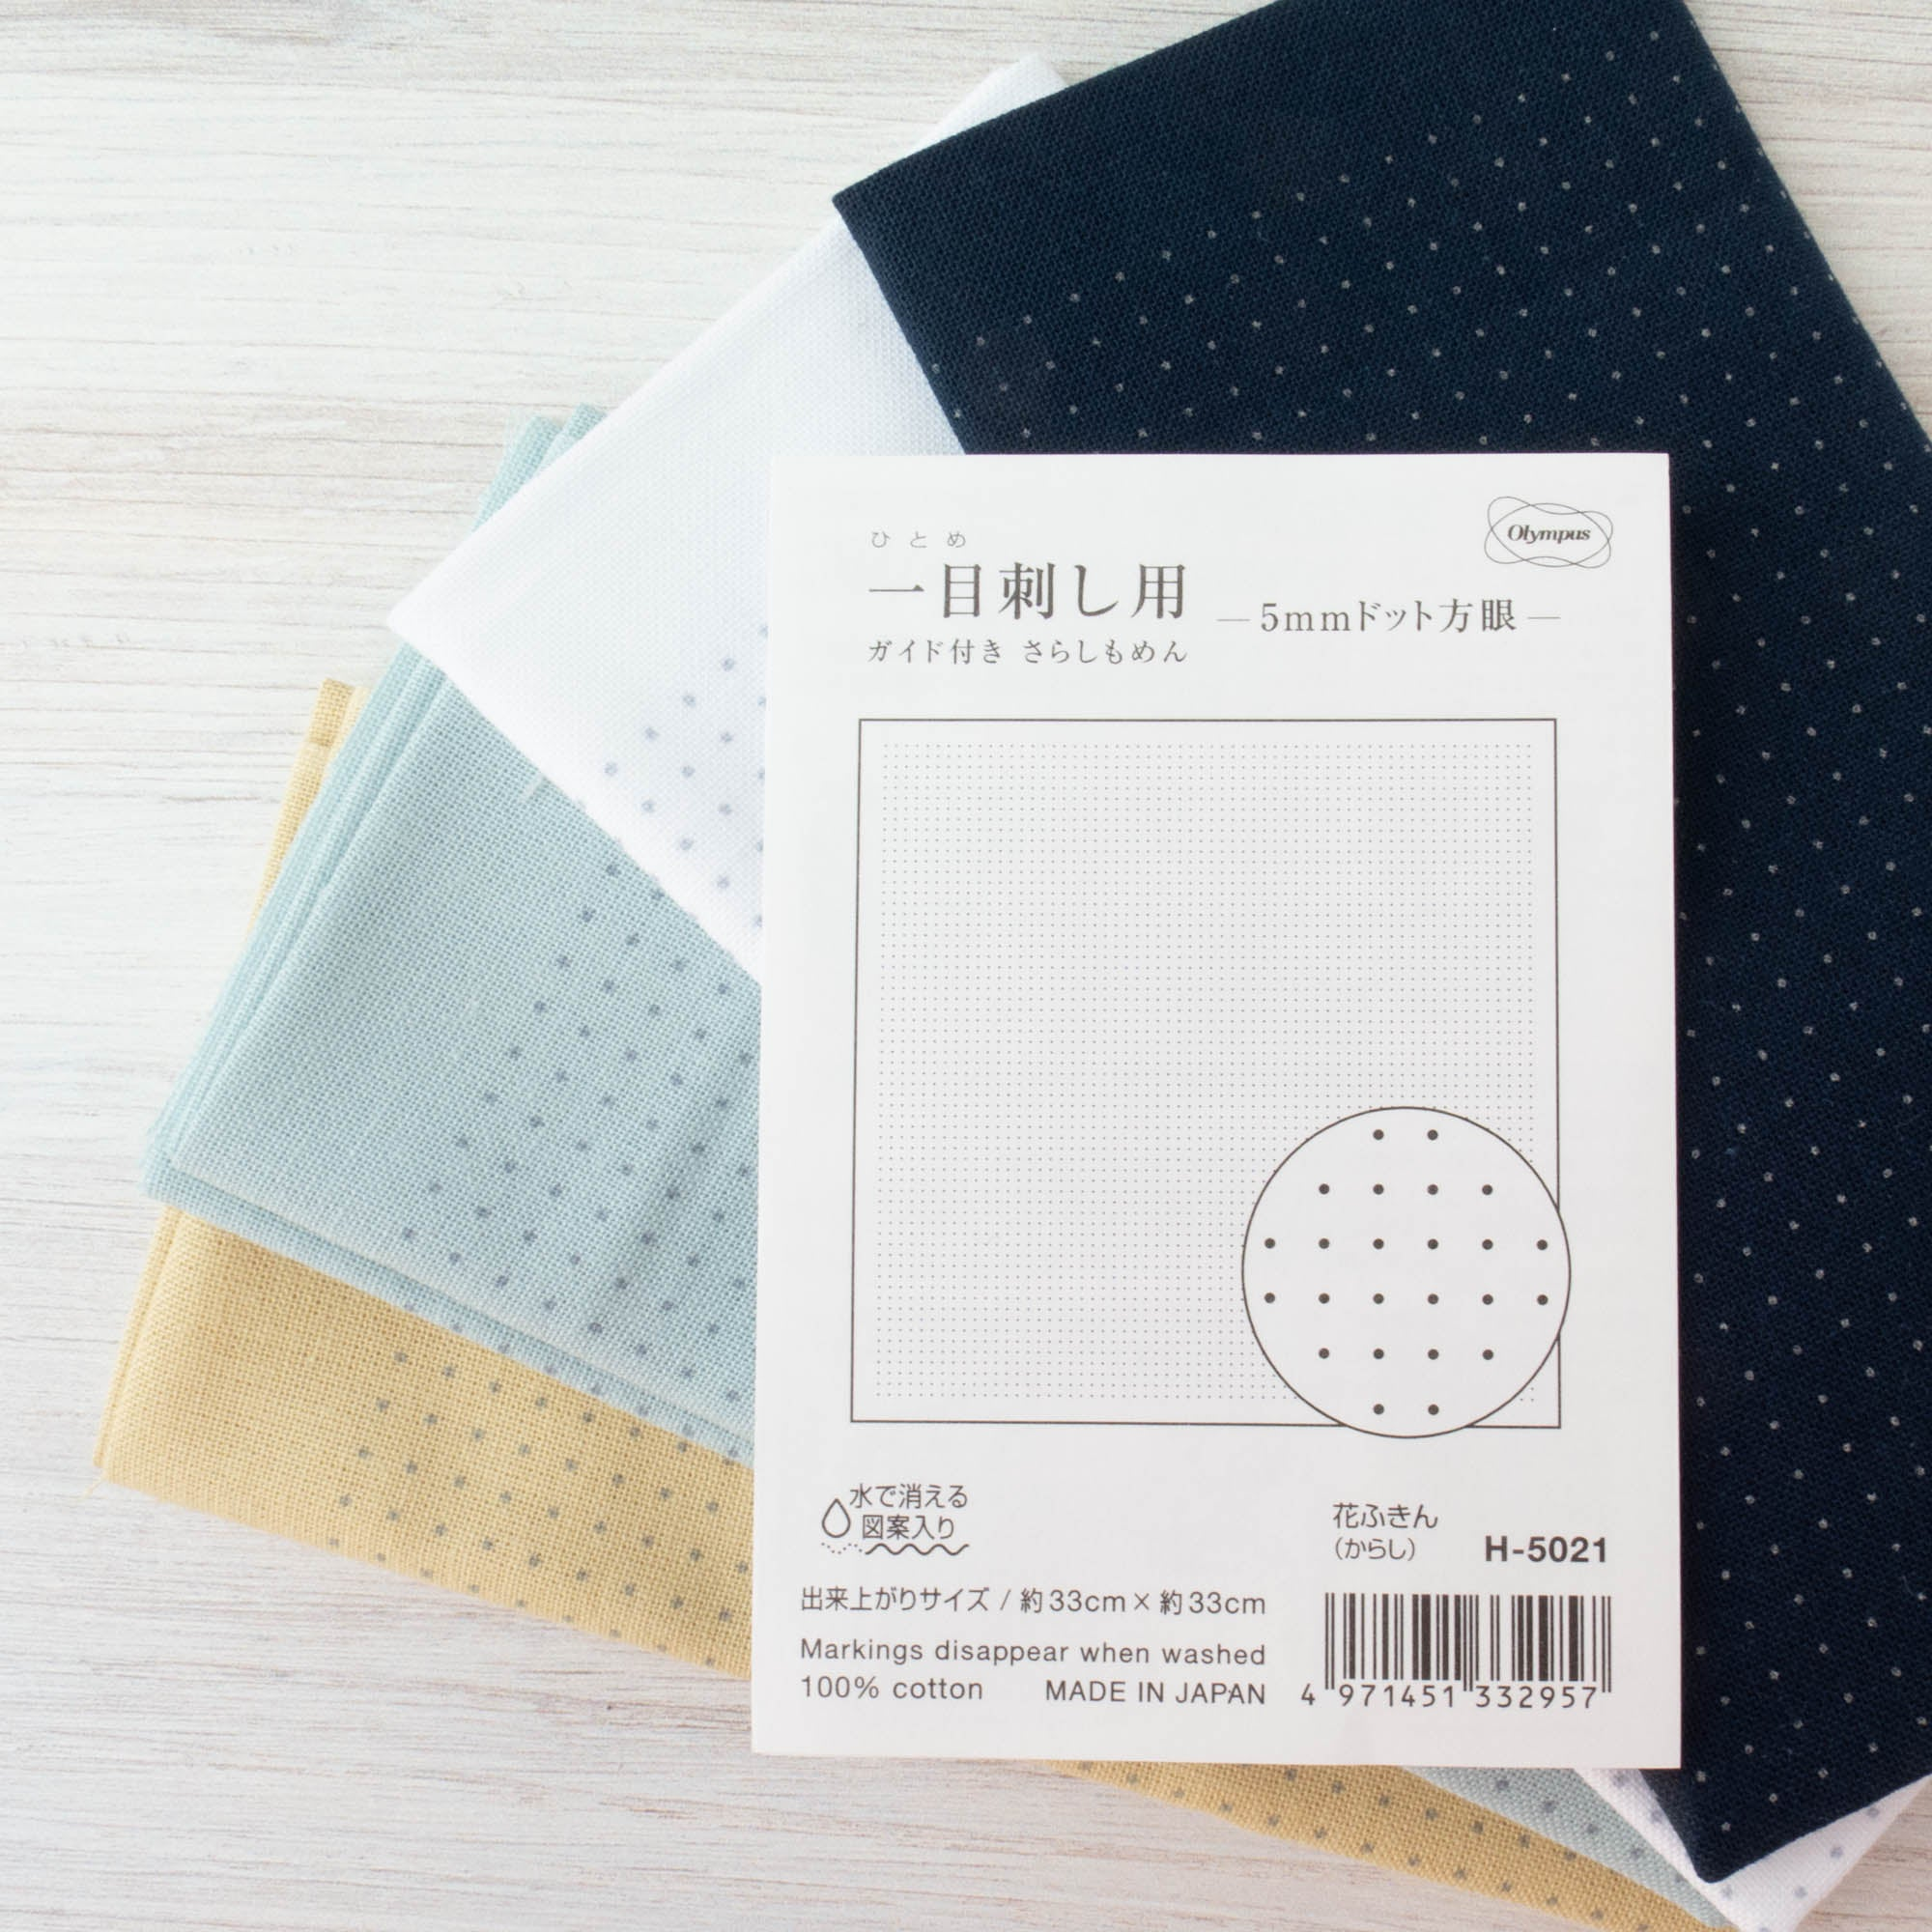 Sashiko Dot Grid Sampler - Straight Line Grid Sashiko - Snuggly Monkey